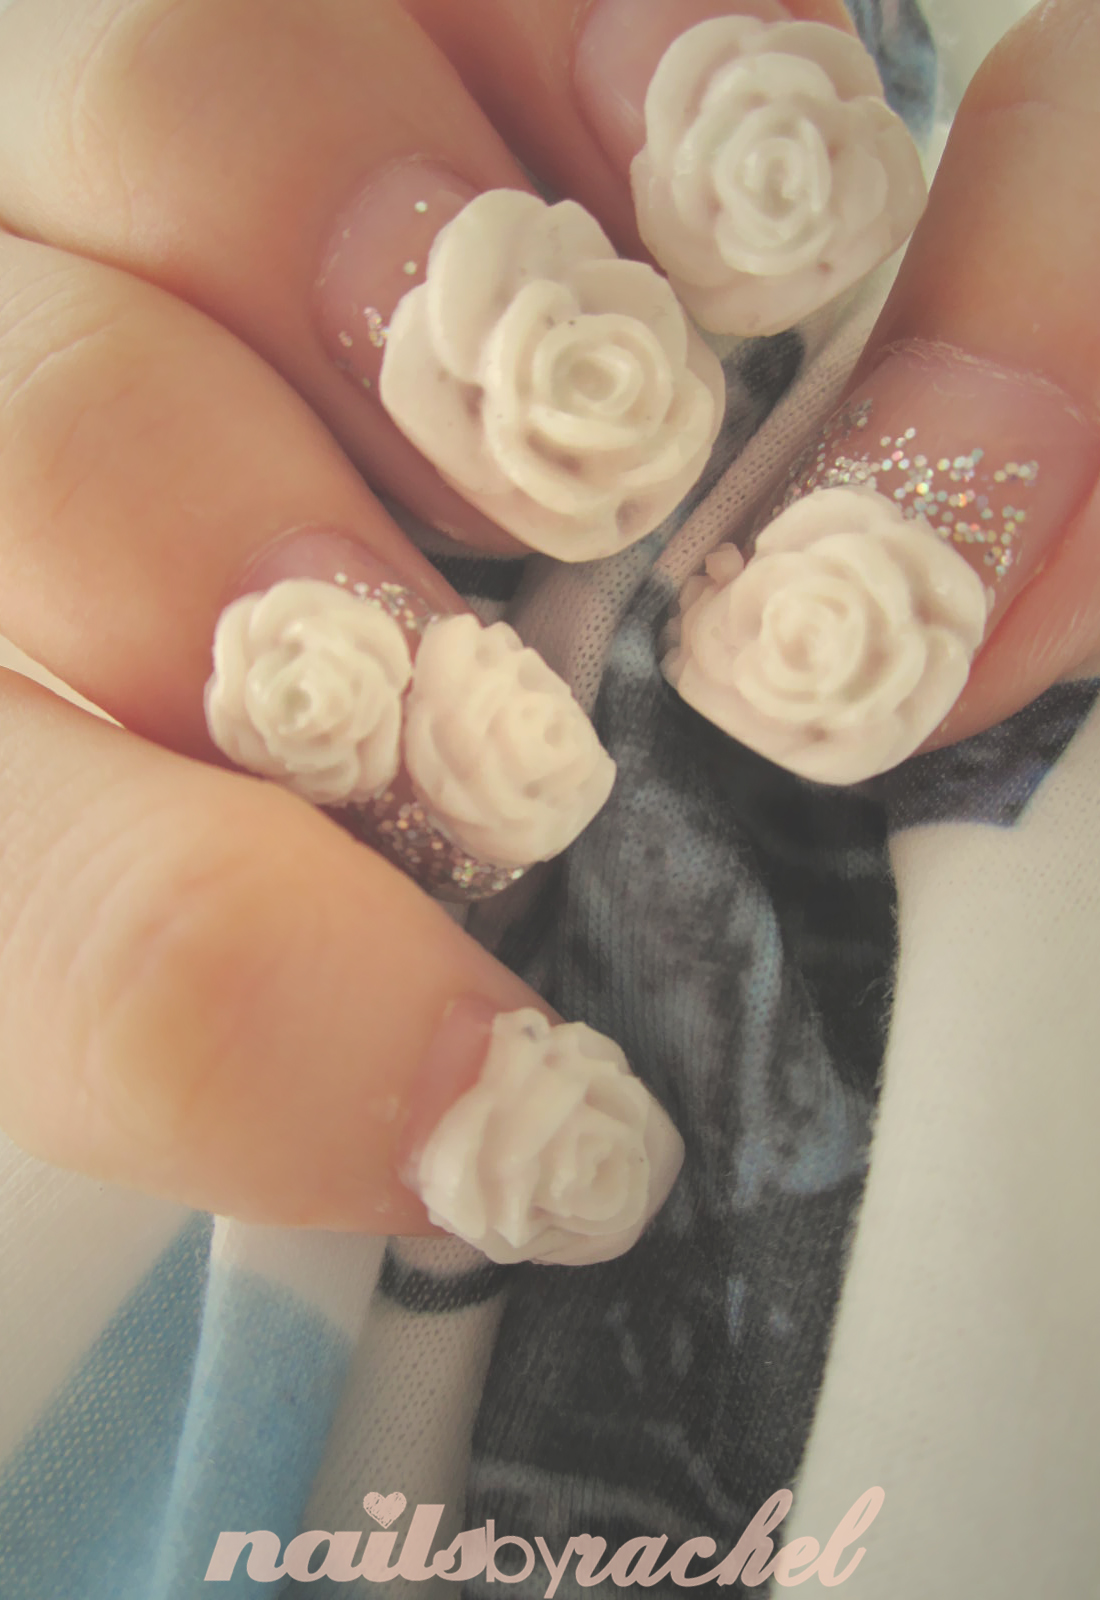 Nails by Rachel: about growing flowers on my nails